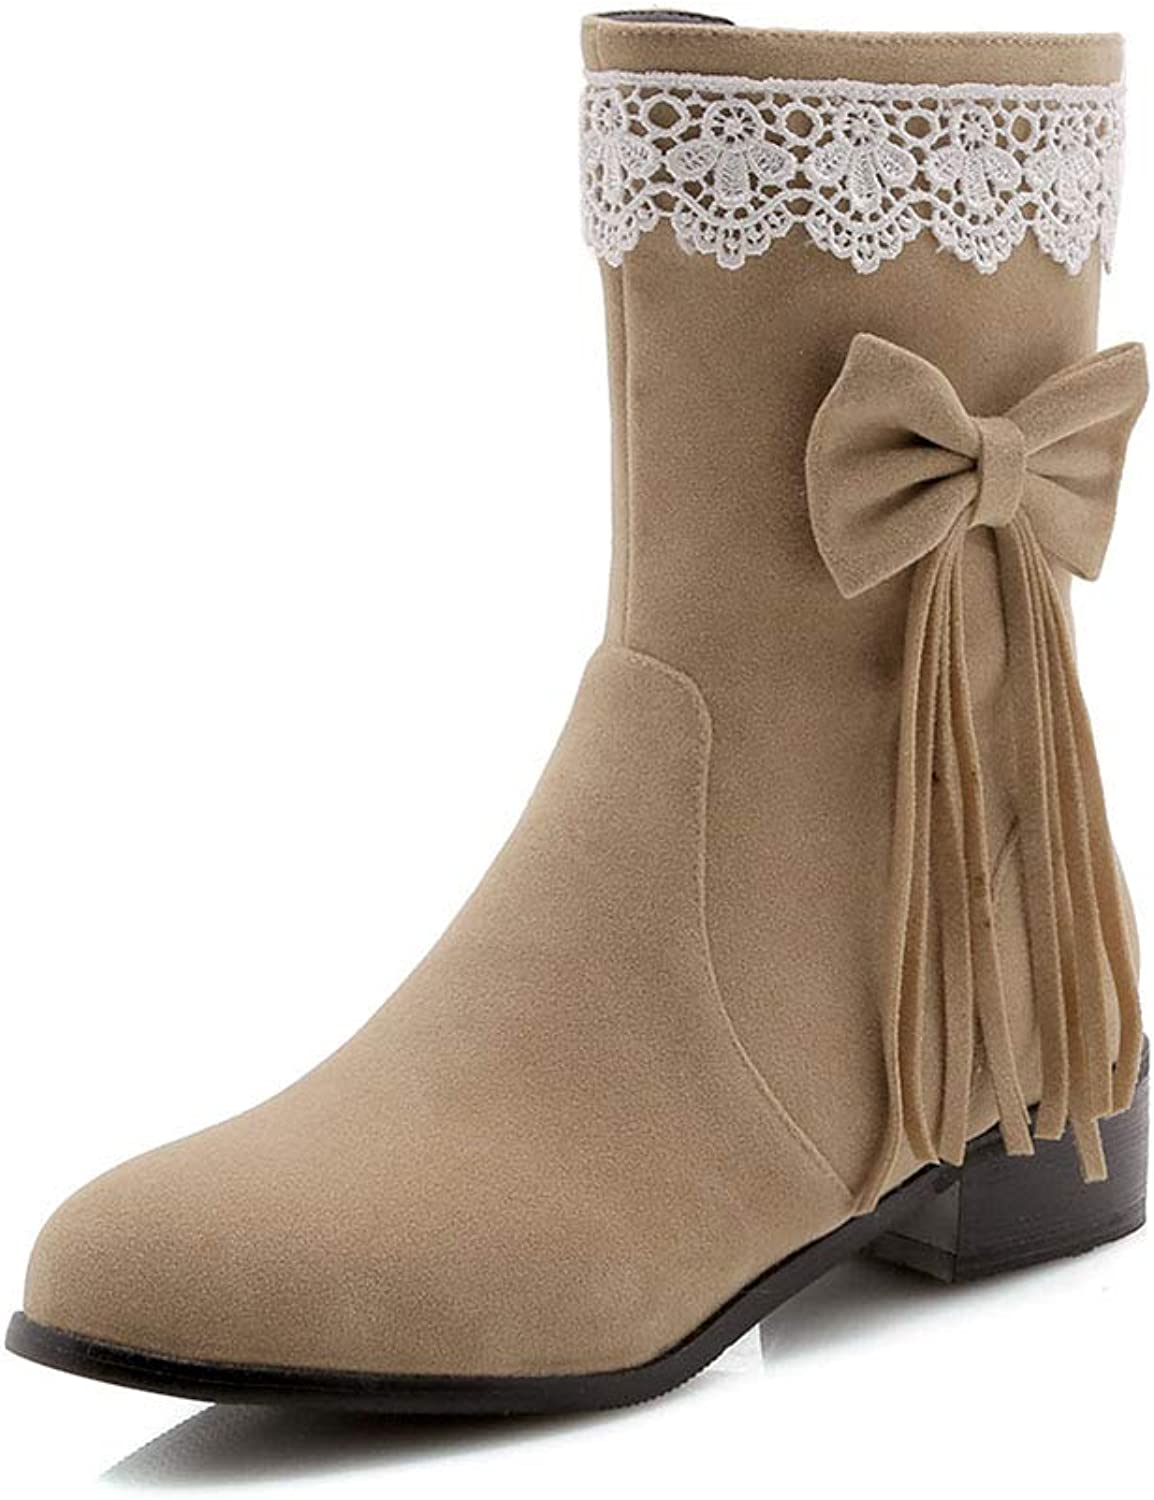 TWGDH Flat Mid-Calf Boots Ladies Womans Casual Comfortable Round Toe Sweet Bow Ankle Booties